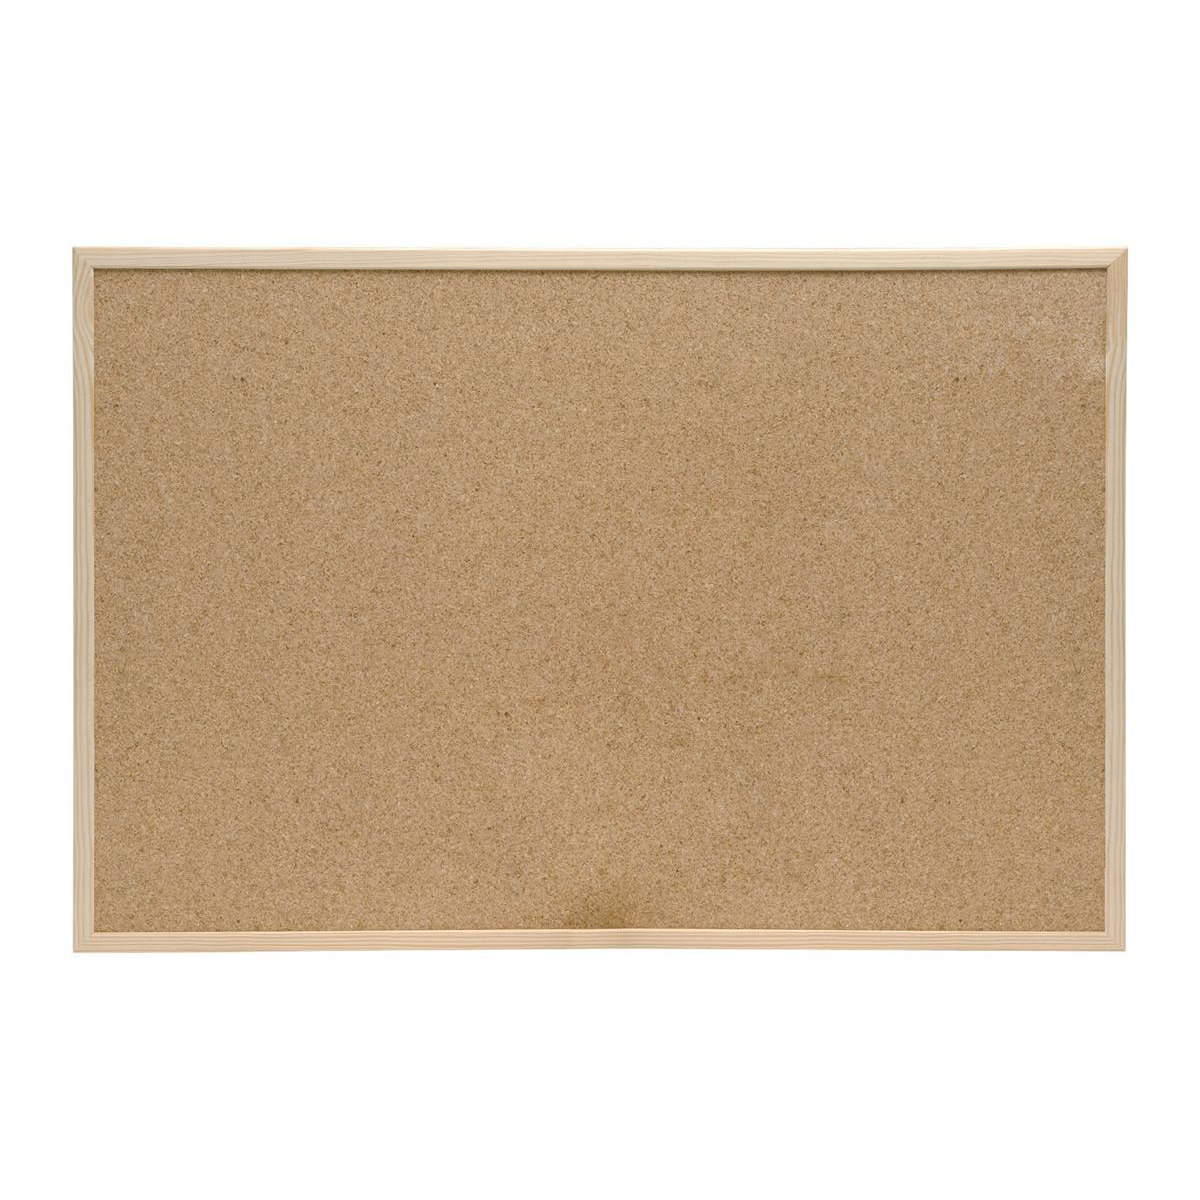 Cork 5 Star Office Noticeboard Cork with Pine Frame W600xH400mm